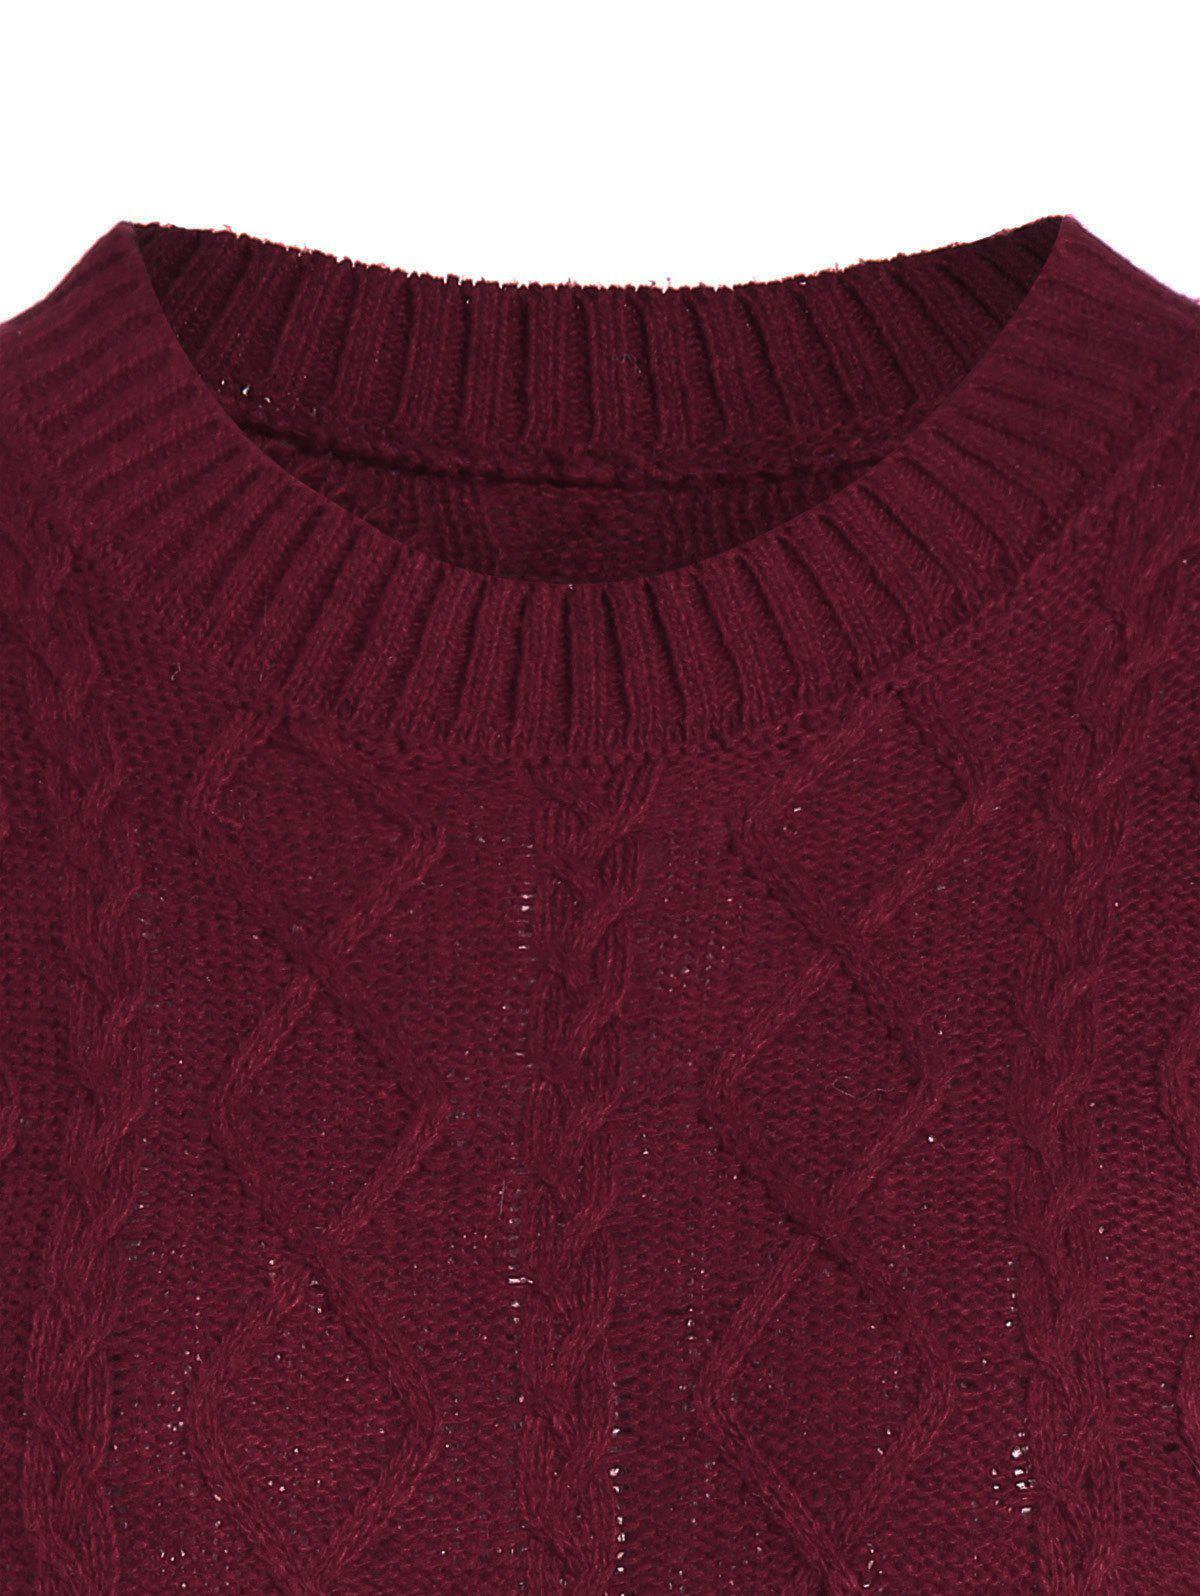 Cable Knit Pullover Sweater - BURGUNDY M